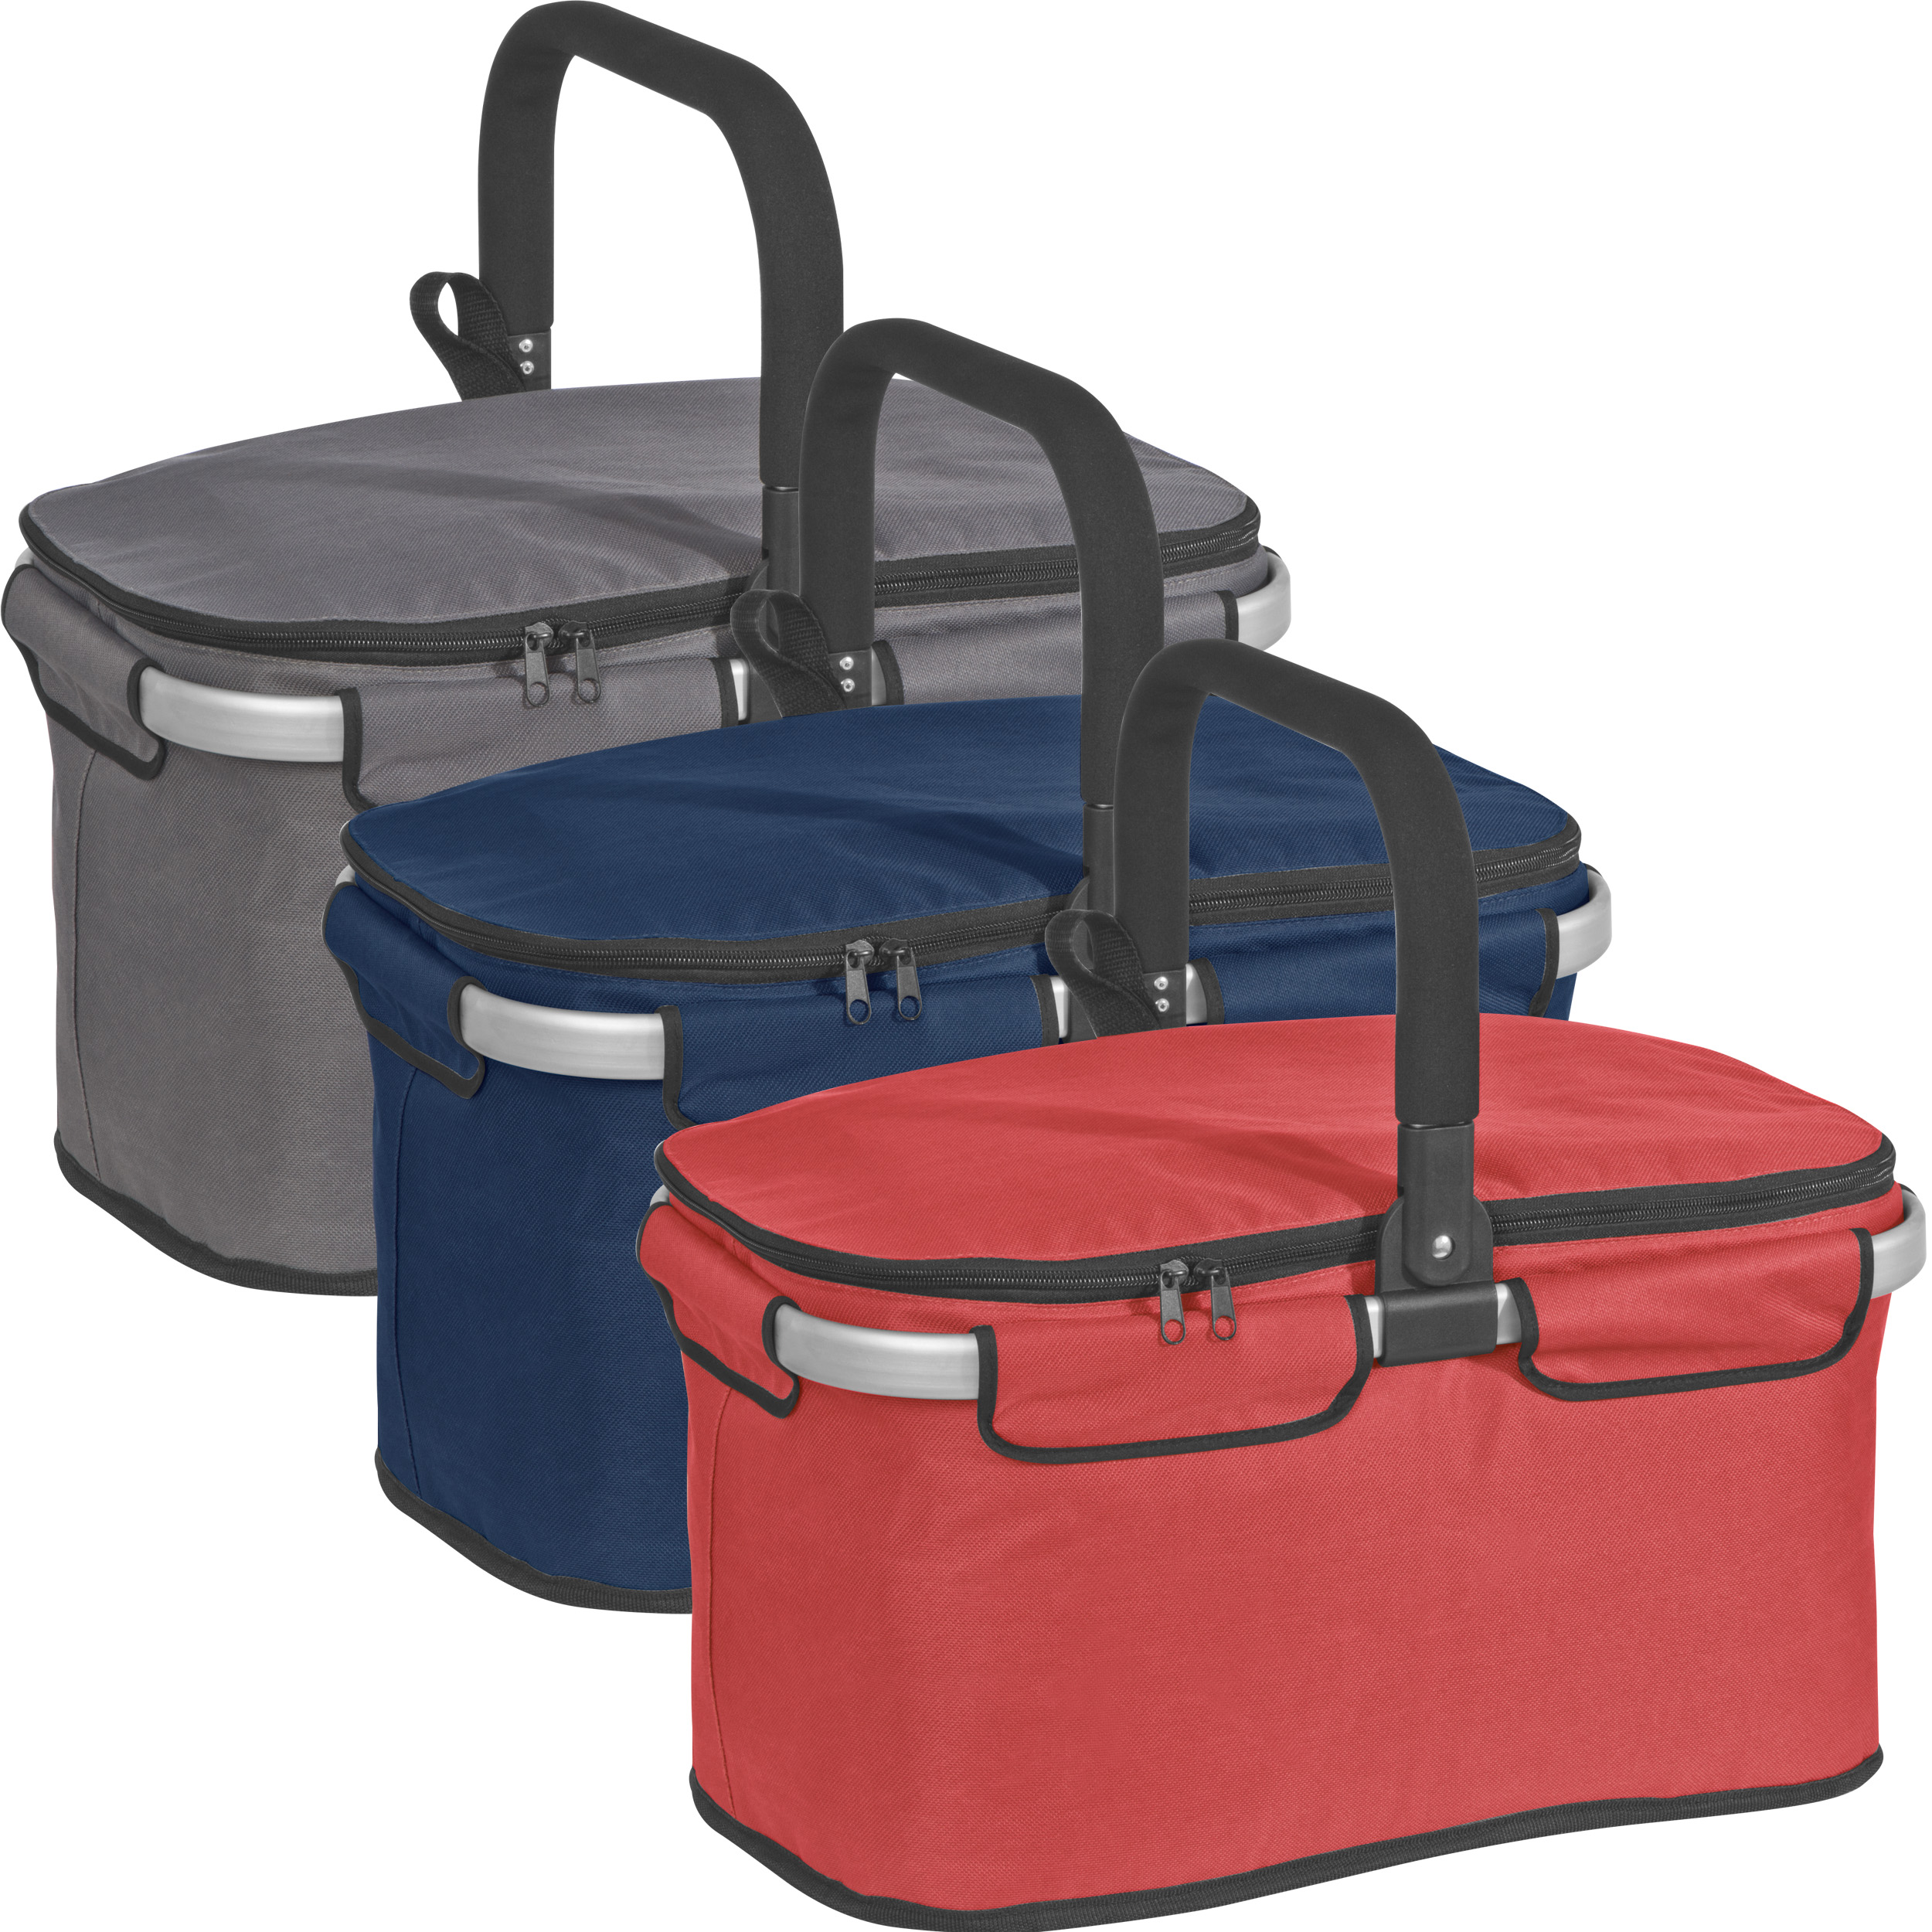 Luxury shopping basket with cooler function